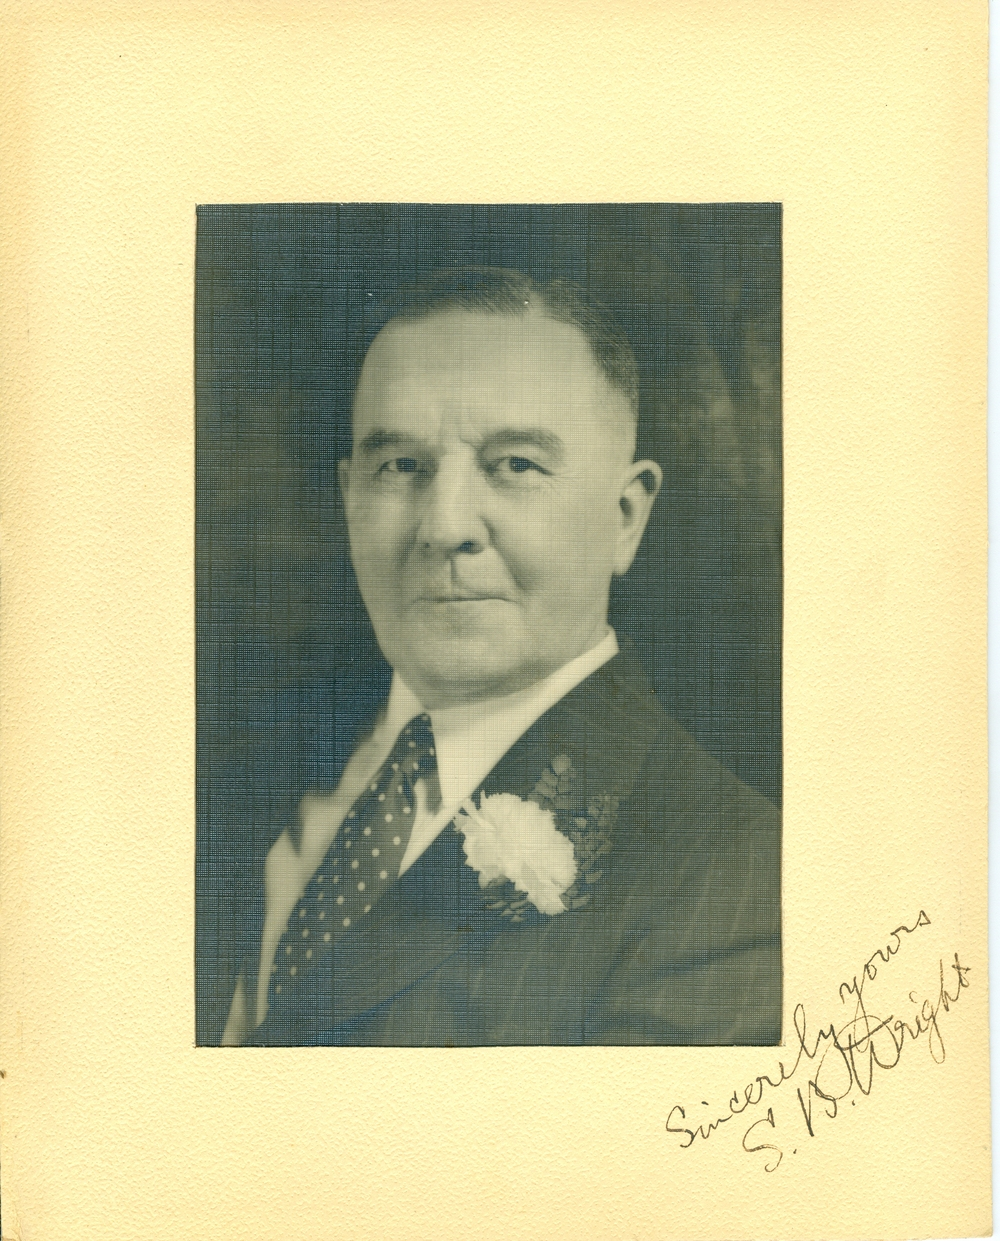 S.B. Wright,  Vice President of the Deloro Mining and Reduction Co.